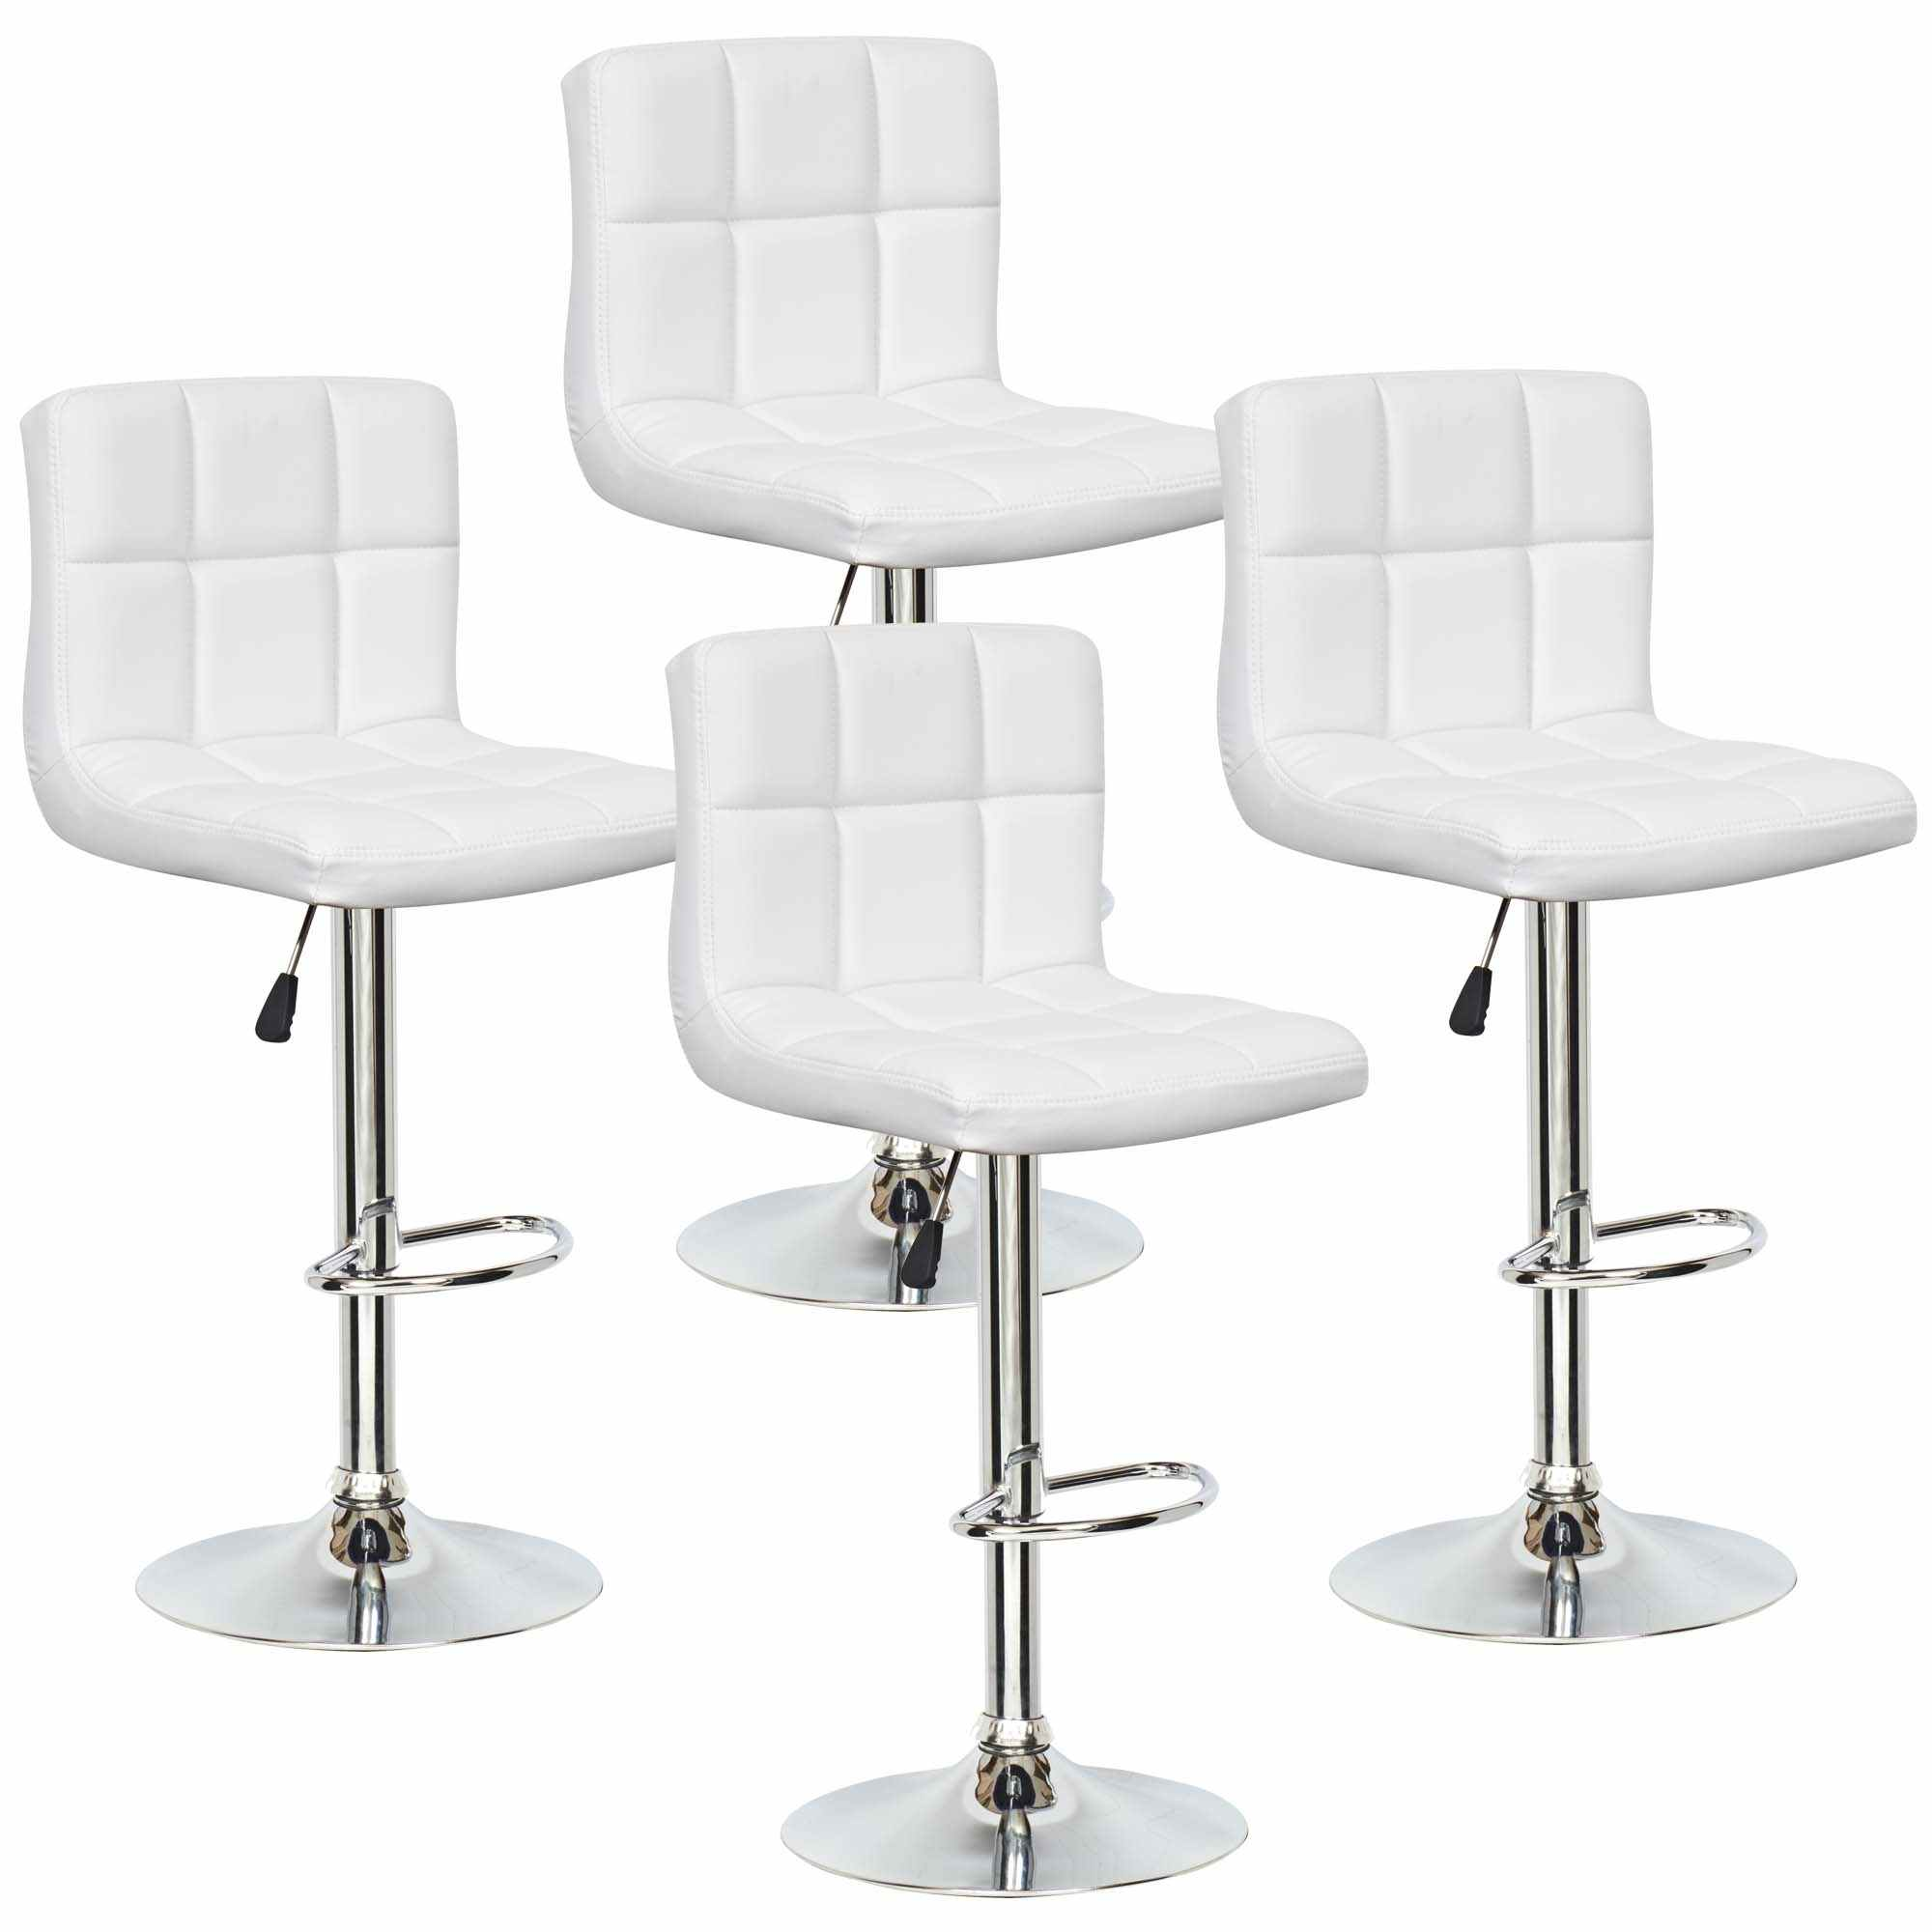 deco in paris lot de 4 tabourets de bar blanc scalo scalo tab blanc 4. Black Bedroom Furniture Sets. Home Design Ideas